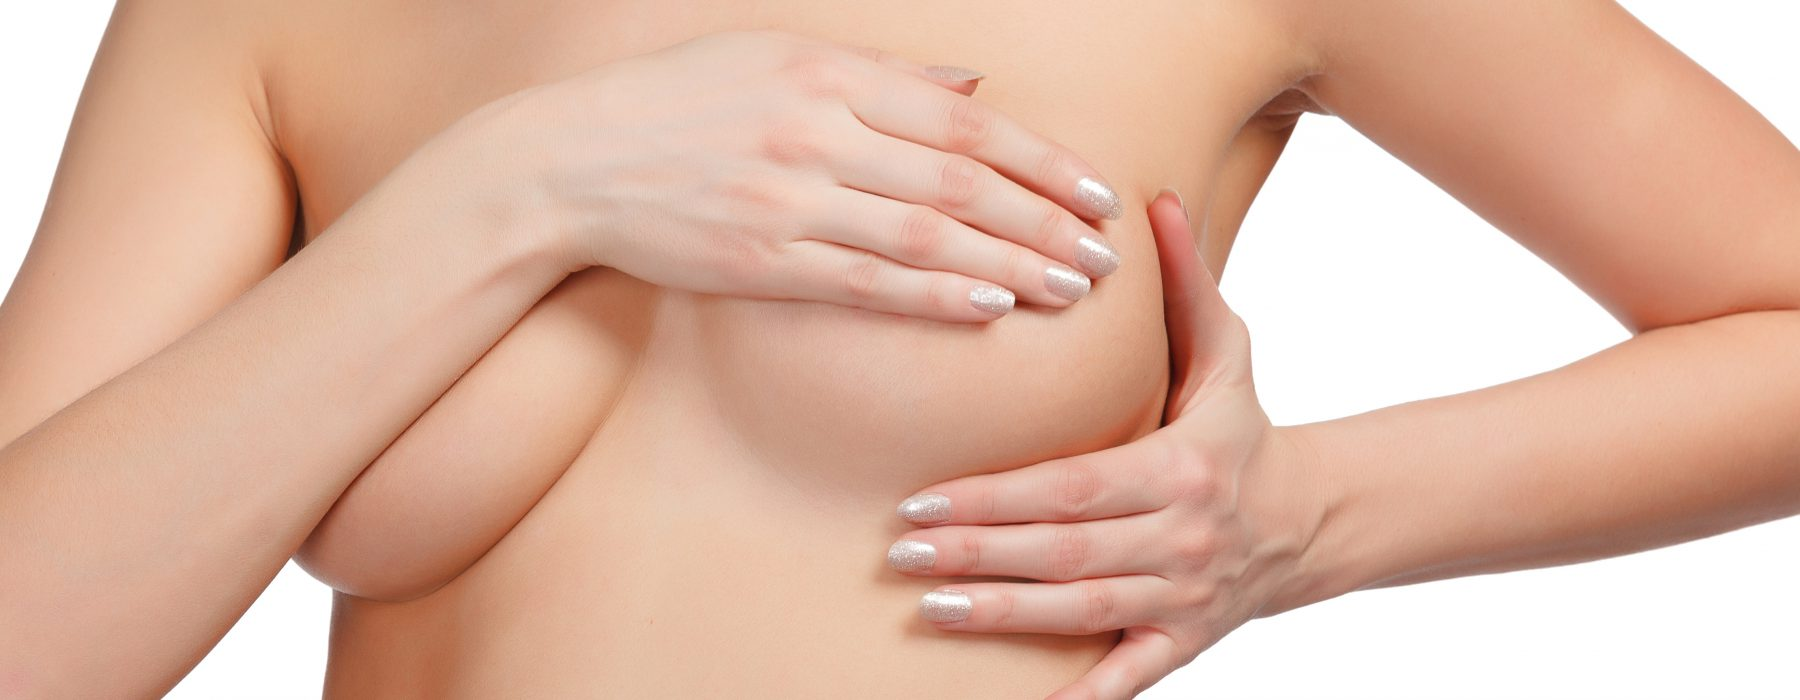 Secondary breast surgery